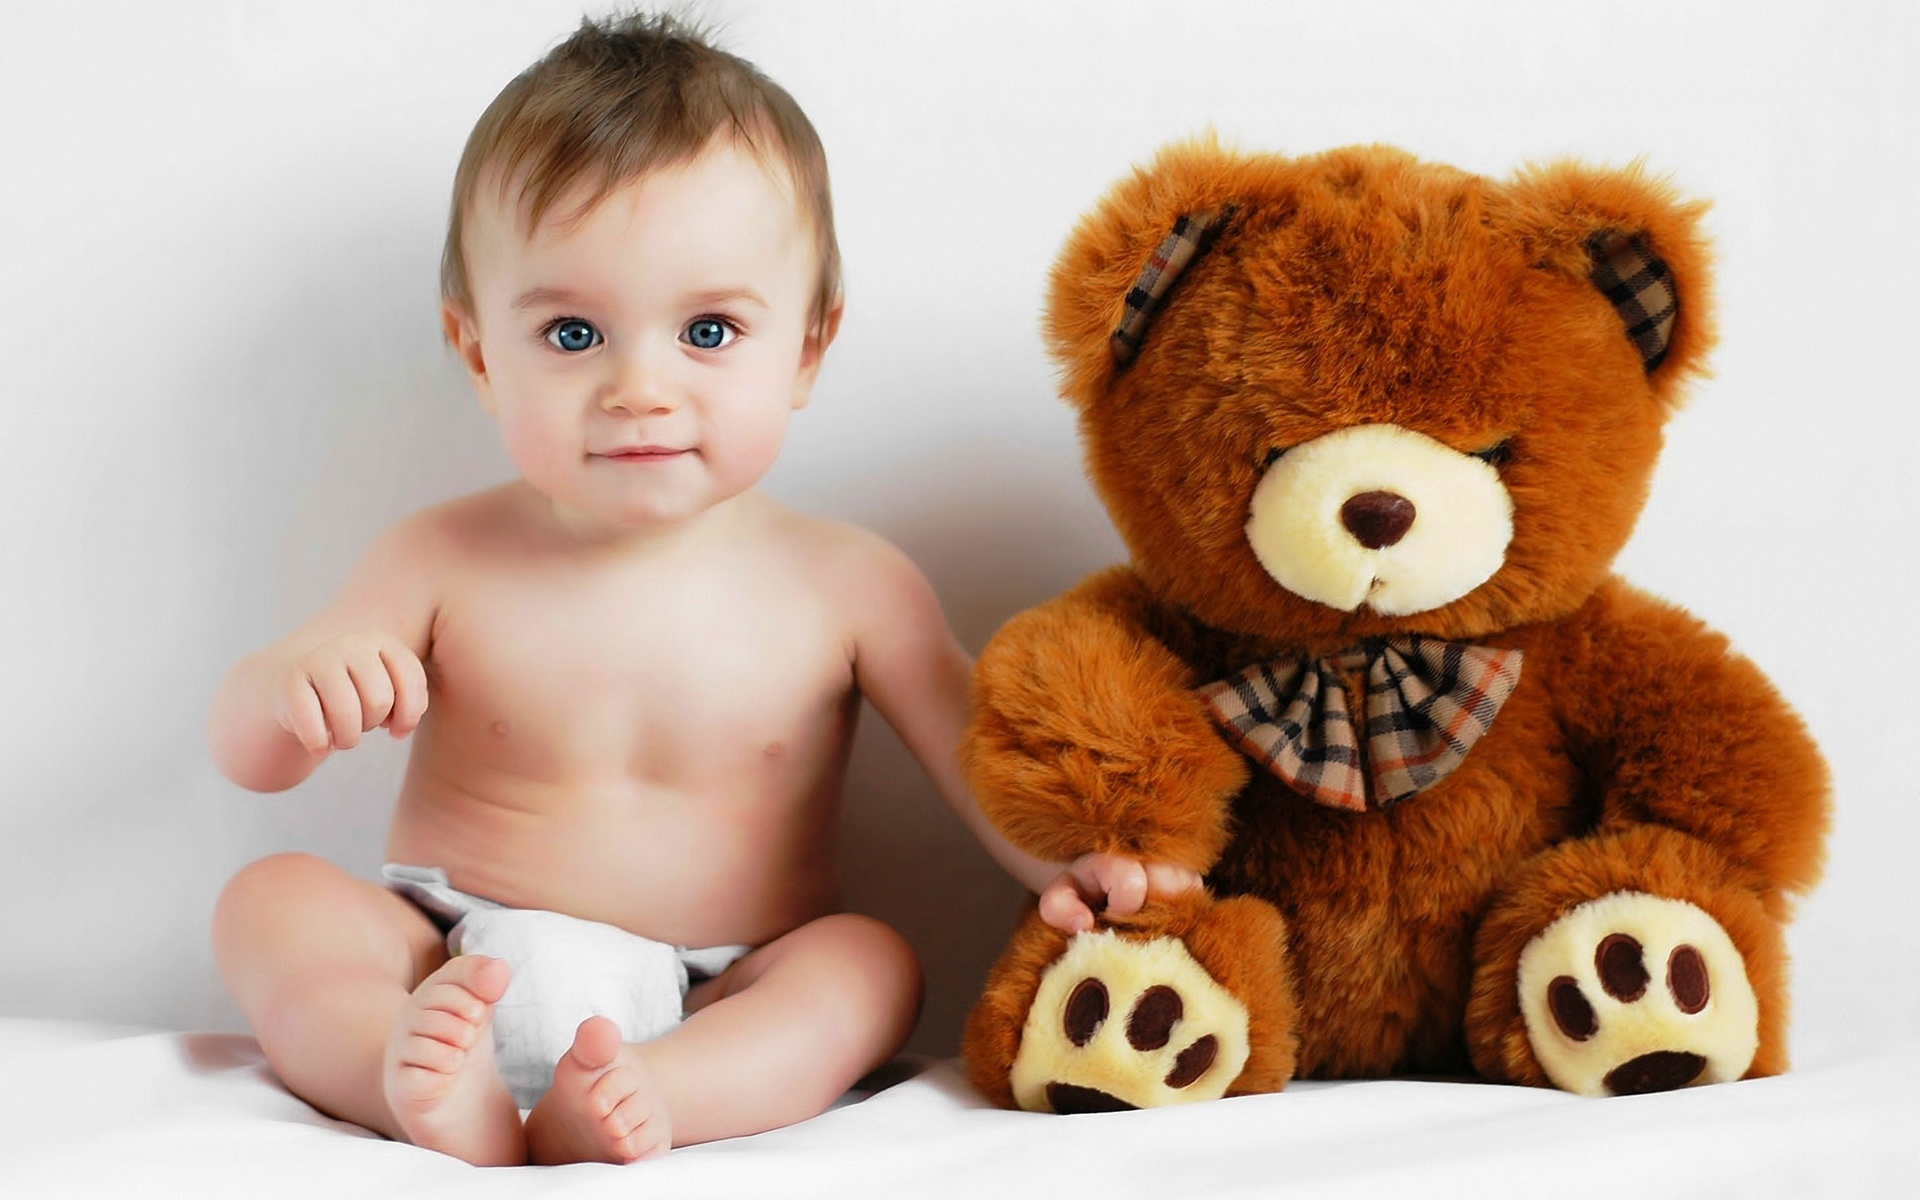 Baby and teddy bear photo wallpaper - 1920x1200